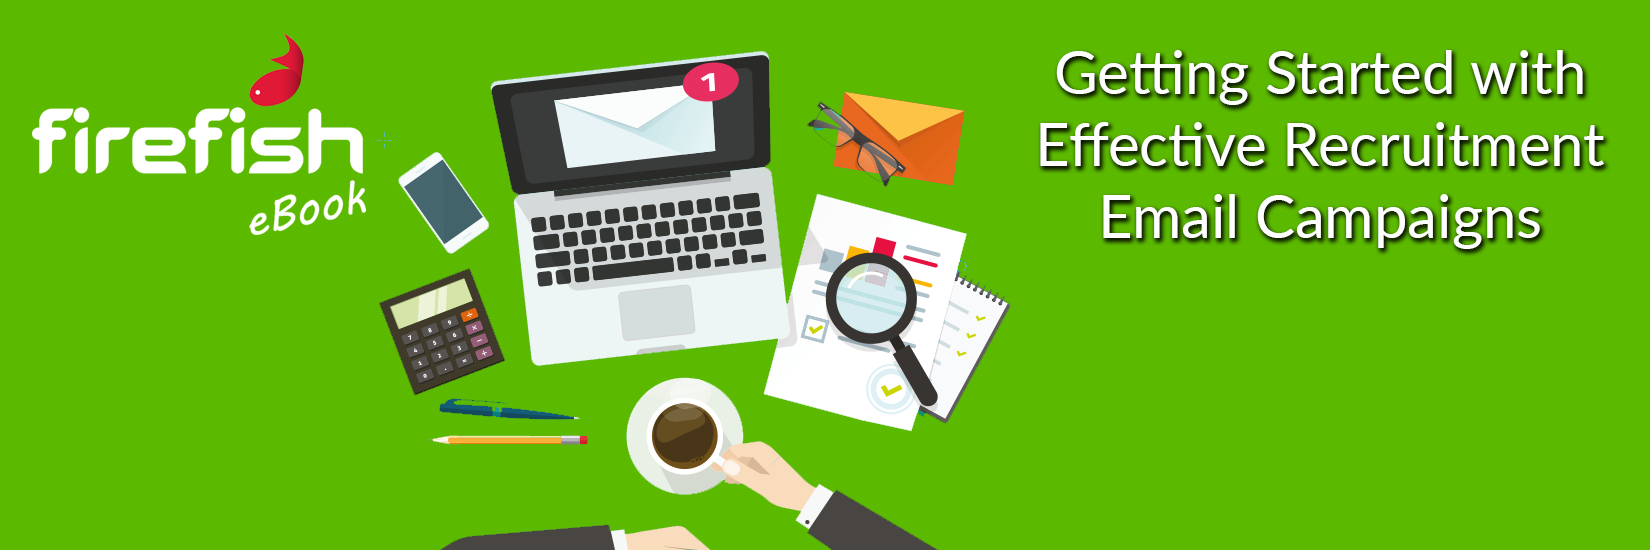 Getting Started with Effective Recruitment Email Campaigns